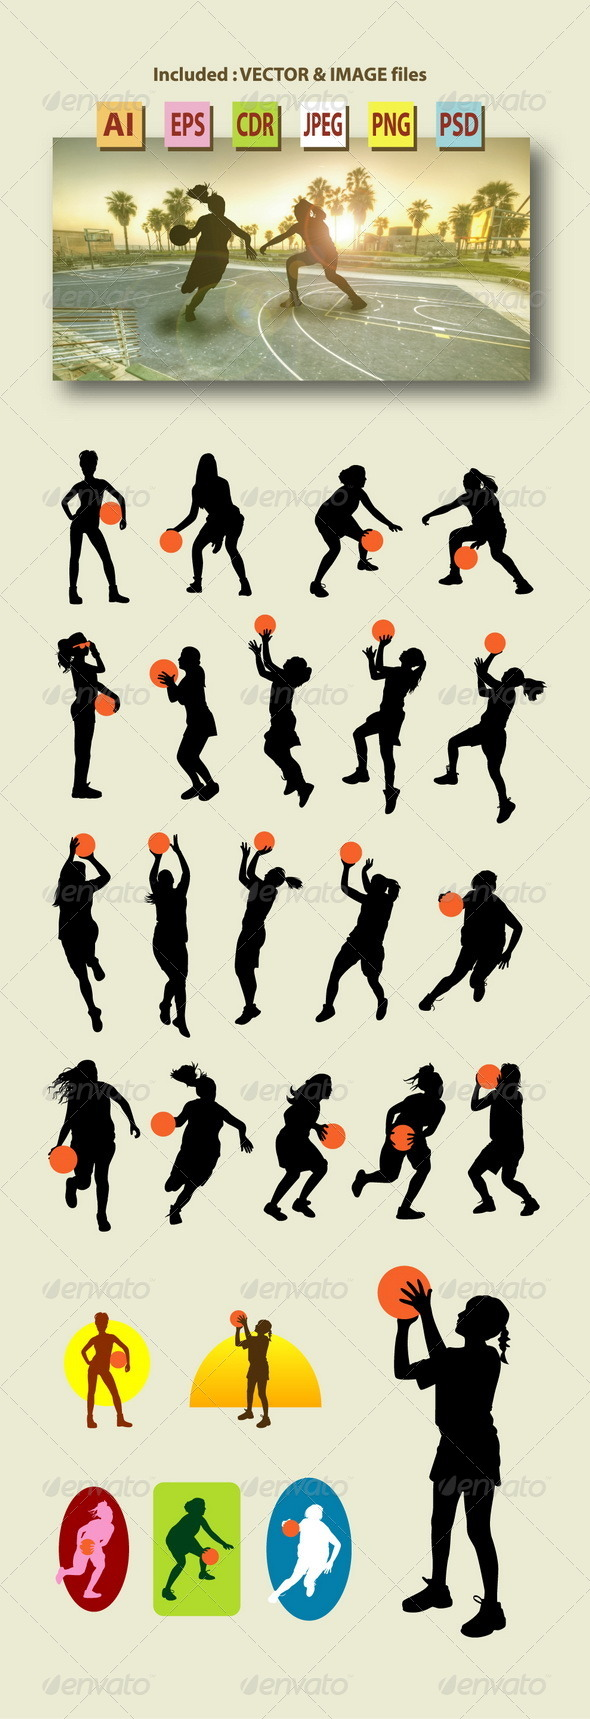 GraphicRiver Female Basketball Silhouettes 7918468